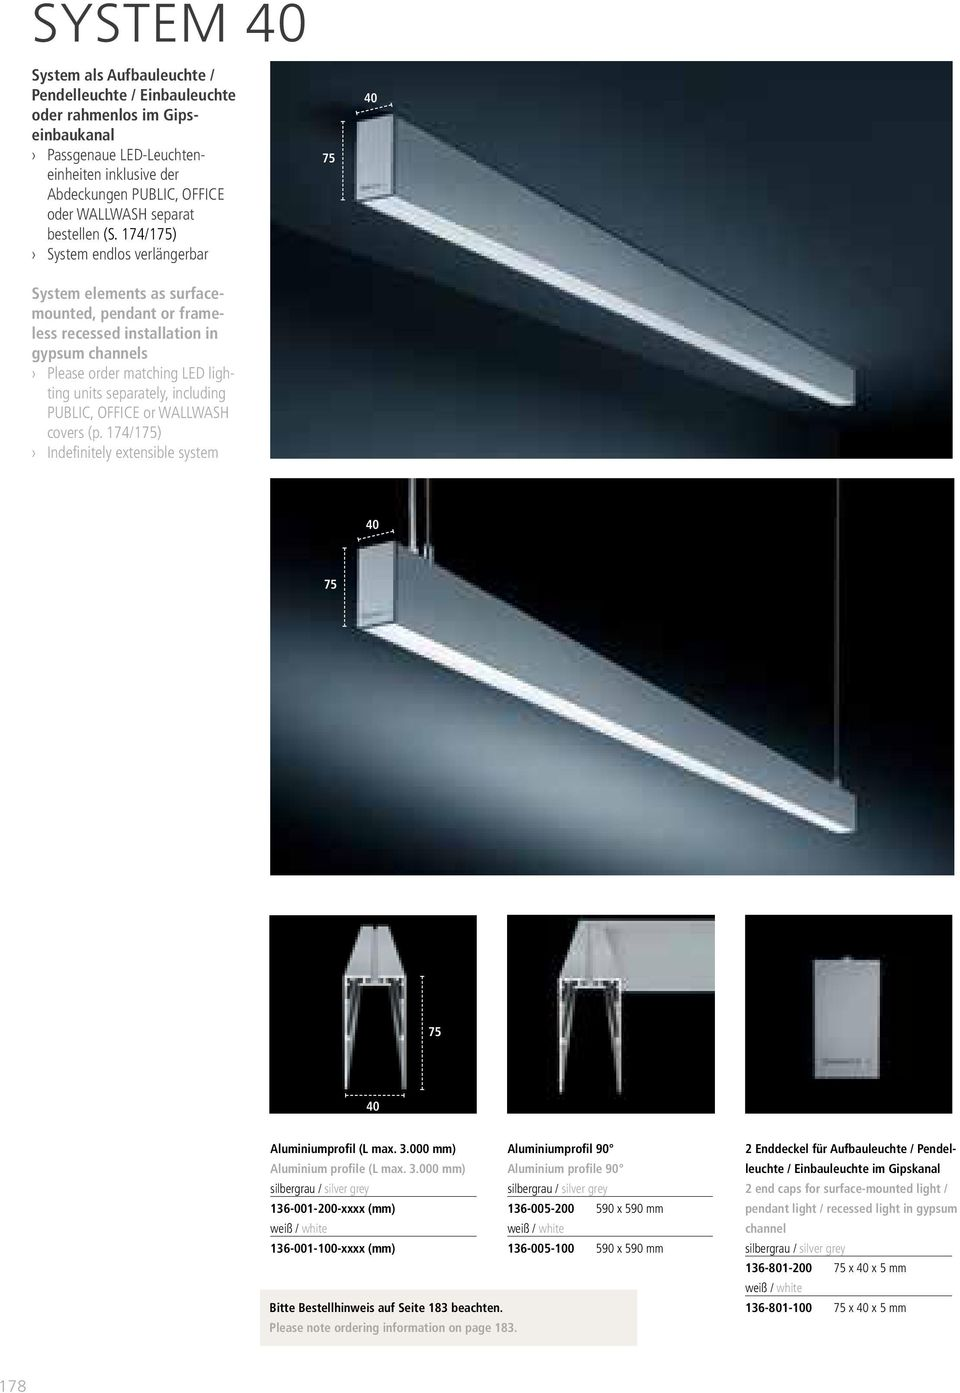 174/175) System endlos verlängerbar System elements as surfacemounted, pendant or frameless recessed installation in gypsum channels Please order matching LED lighting units separately, including